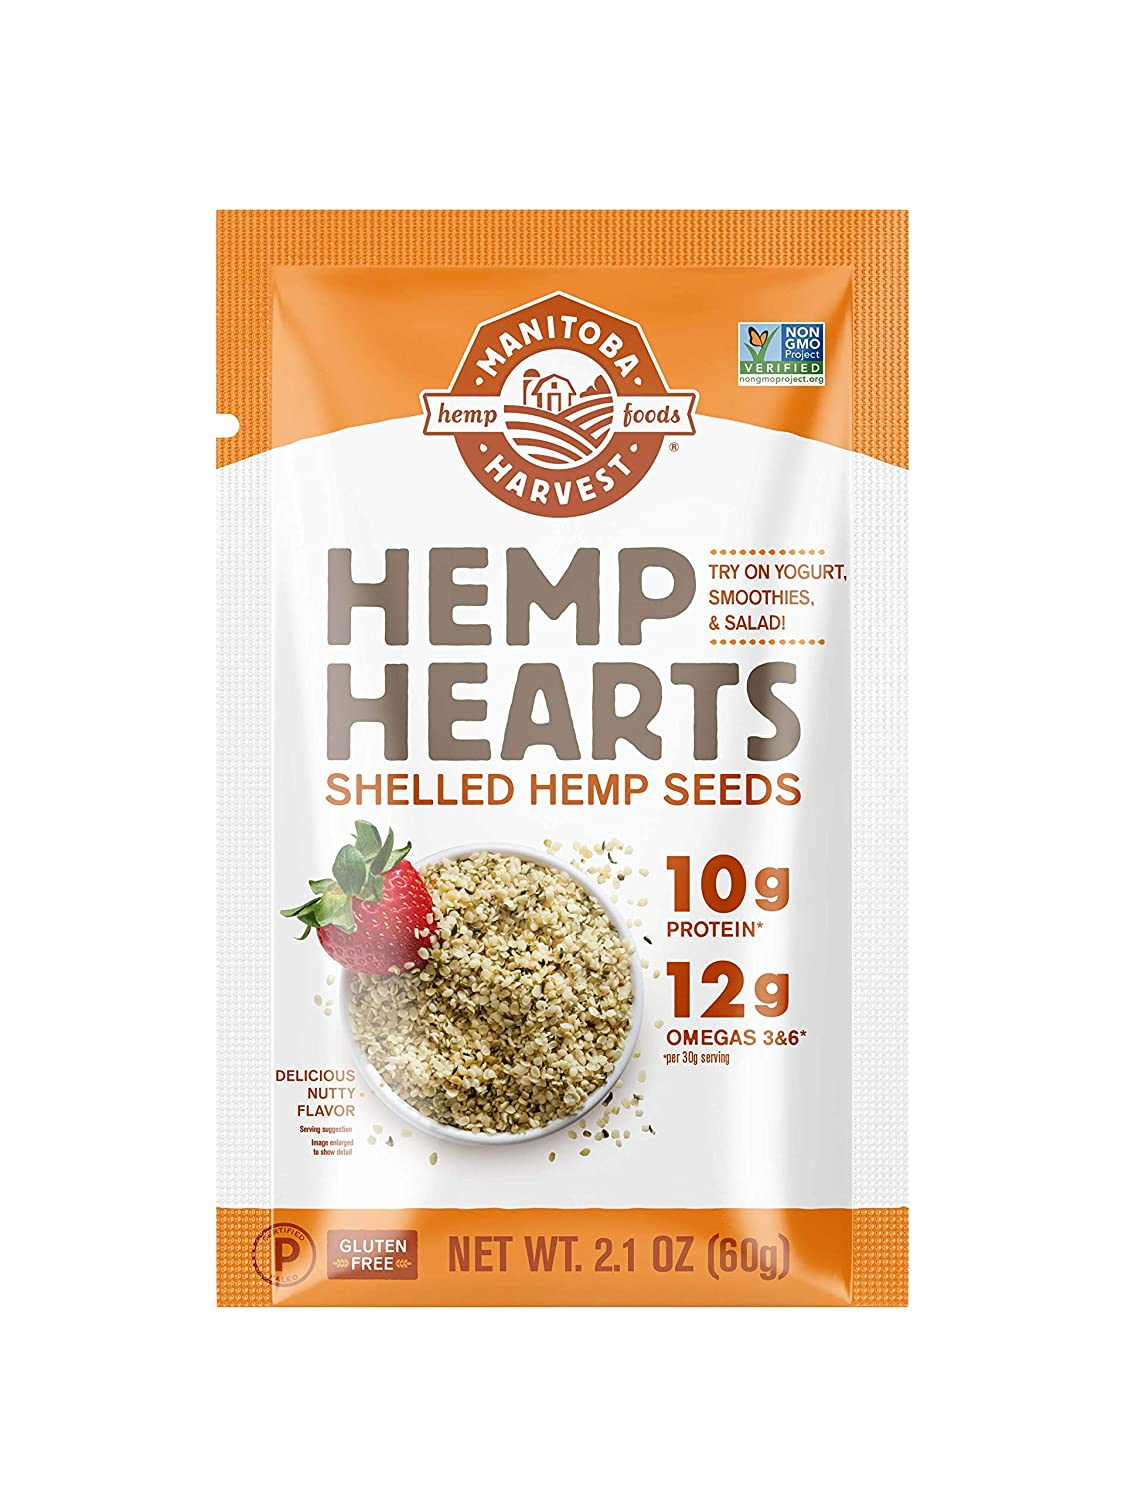 Manitoba Harvest Hemp Hearts Raw Shelled Hemp Seeds, 2.1oz (Pack of 12); with 10g Protein & 12g Omegas per Serving, Keto, Gluten Free, Vegan, Whole 30, Paleo, Non-GMO (12-Pack)